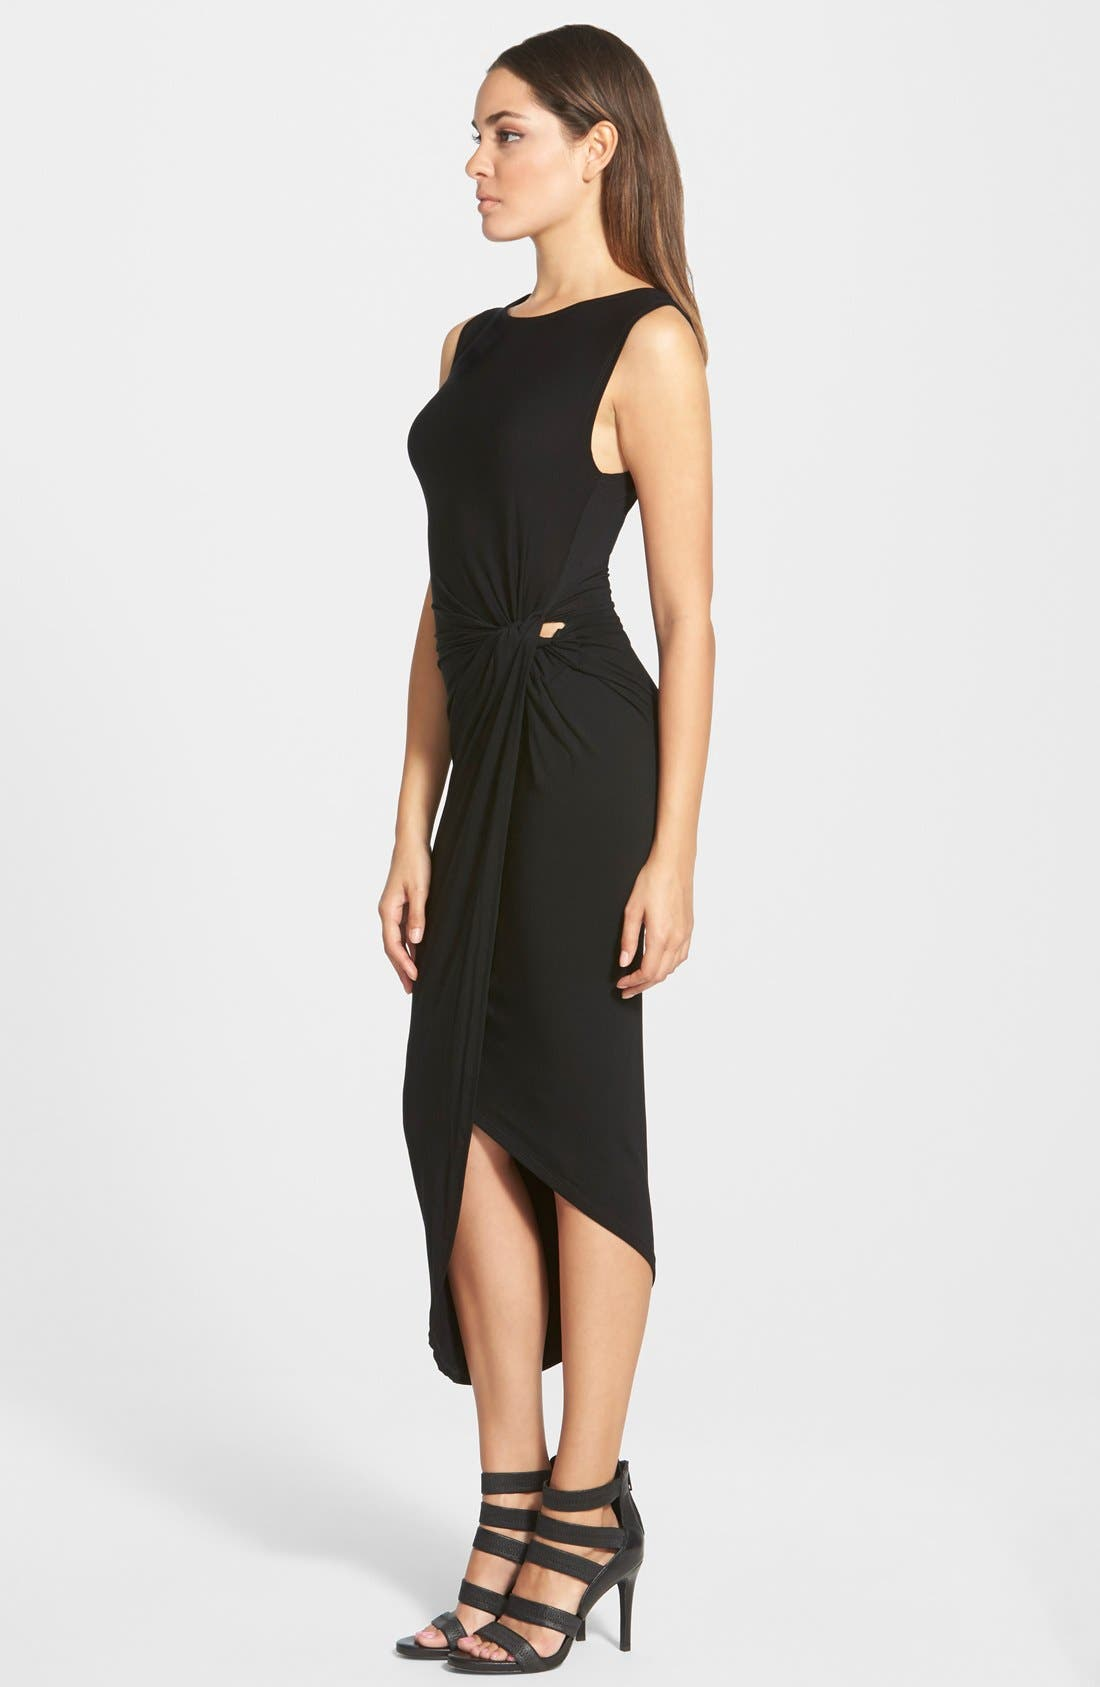 ASTR Knotted Body-Con Dress,                             Alternate thumbnail 6, color,                             001